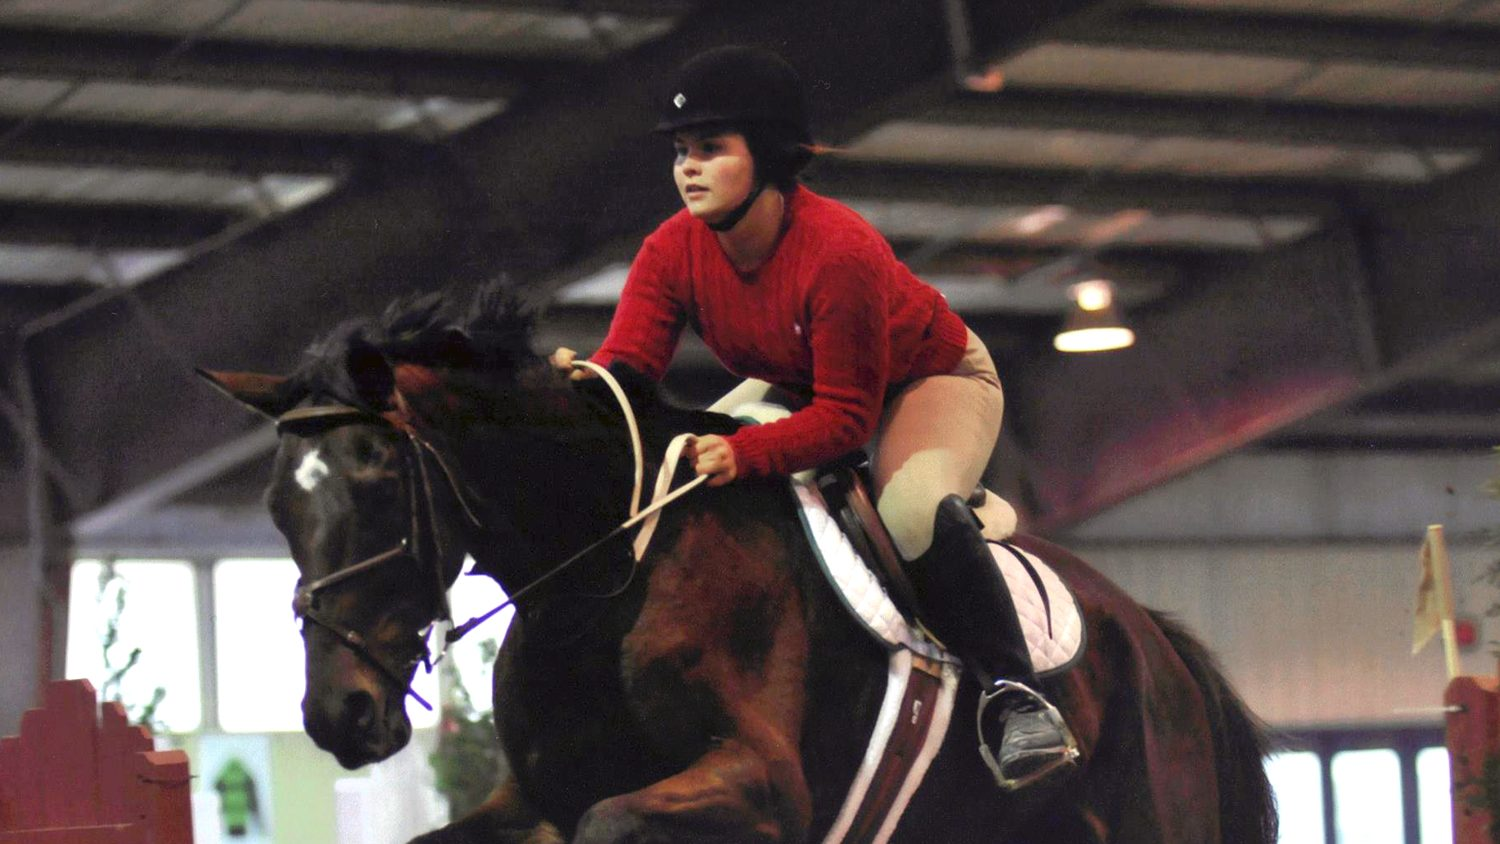 Student riding a horse in an equestrian competition